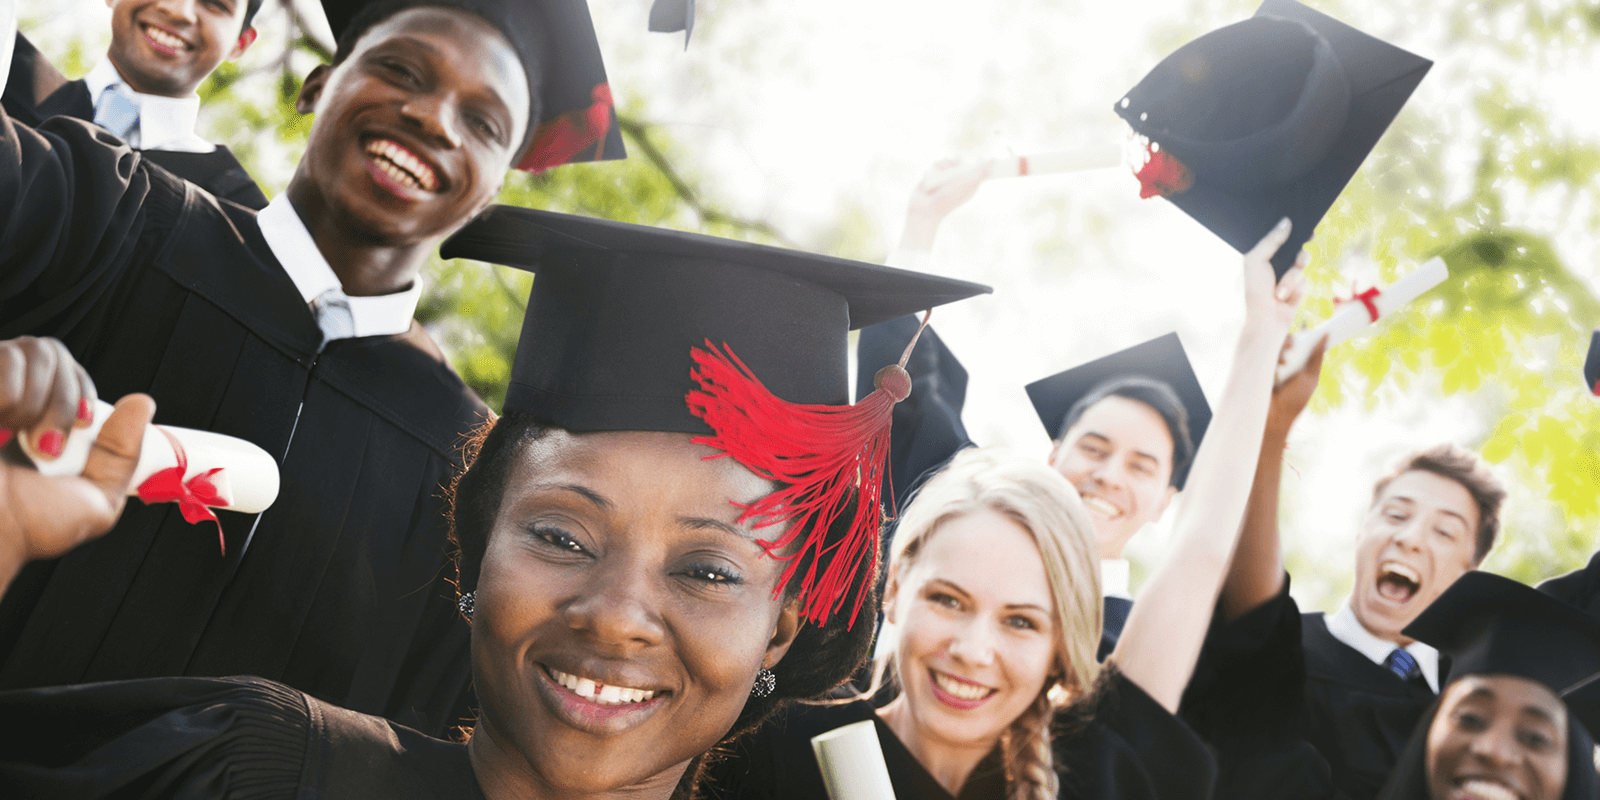 10 Entry Level Remote Jobs And Companies For New College Graduates